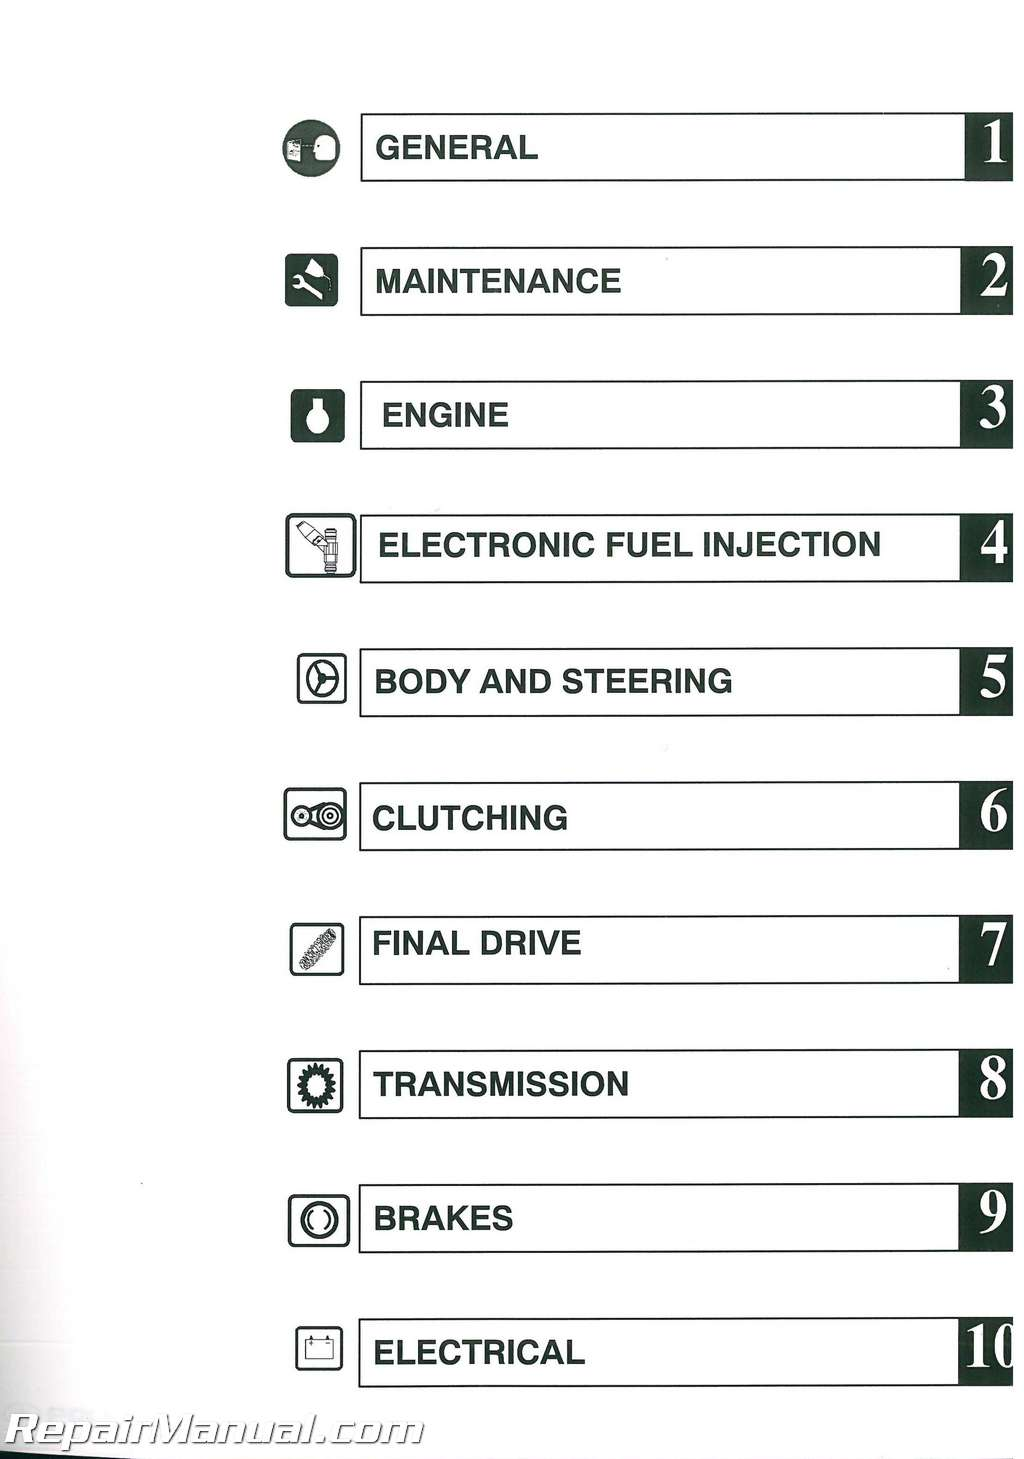 2004 Polaris Sportsman 700 Wiring Diagram from static-resources.imageservice.cloud